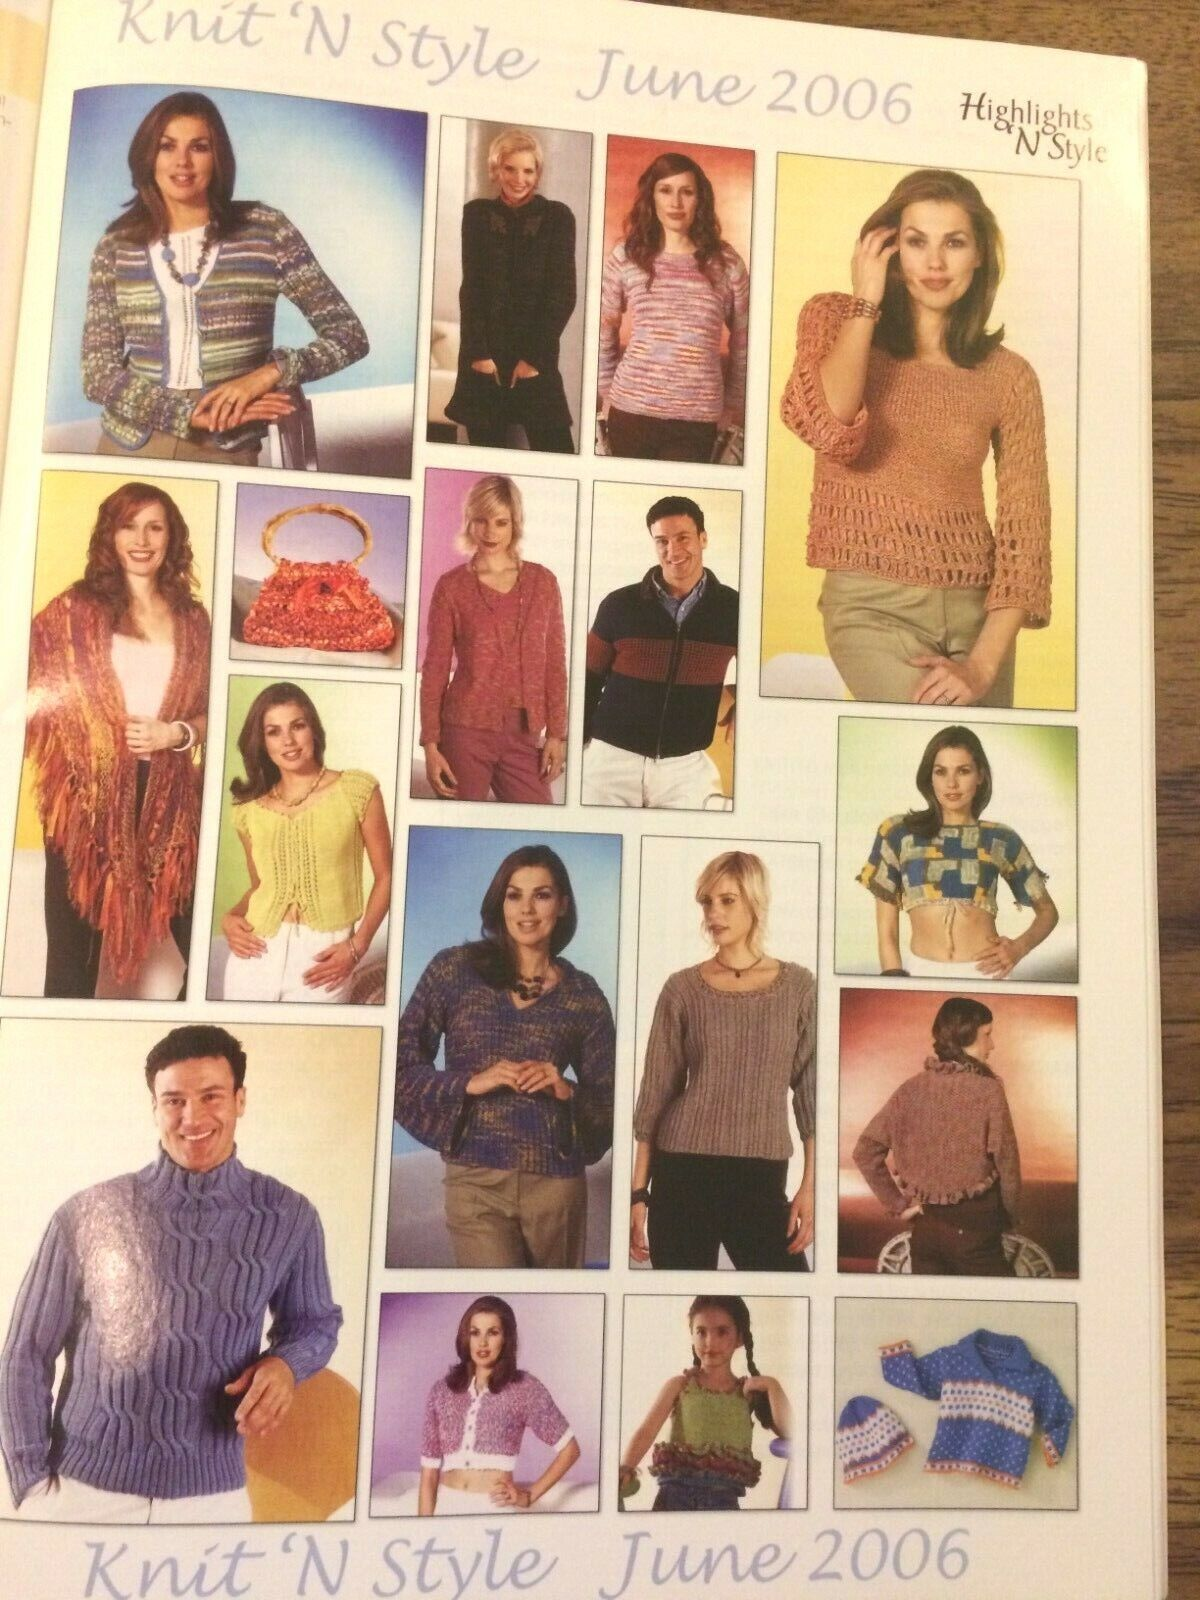 KNIT N STYLE Issue 143 June 2006 Spring Summer LACE Knit Patterns Lot713 - $3.00